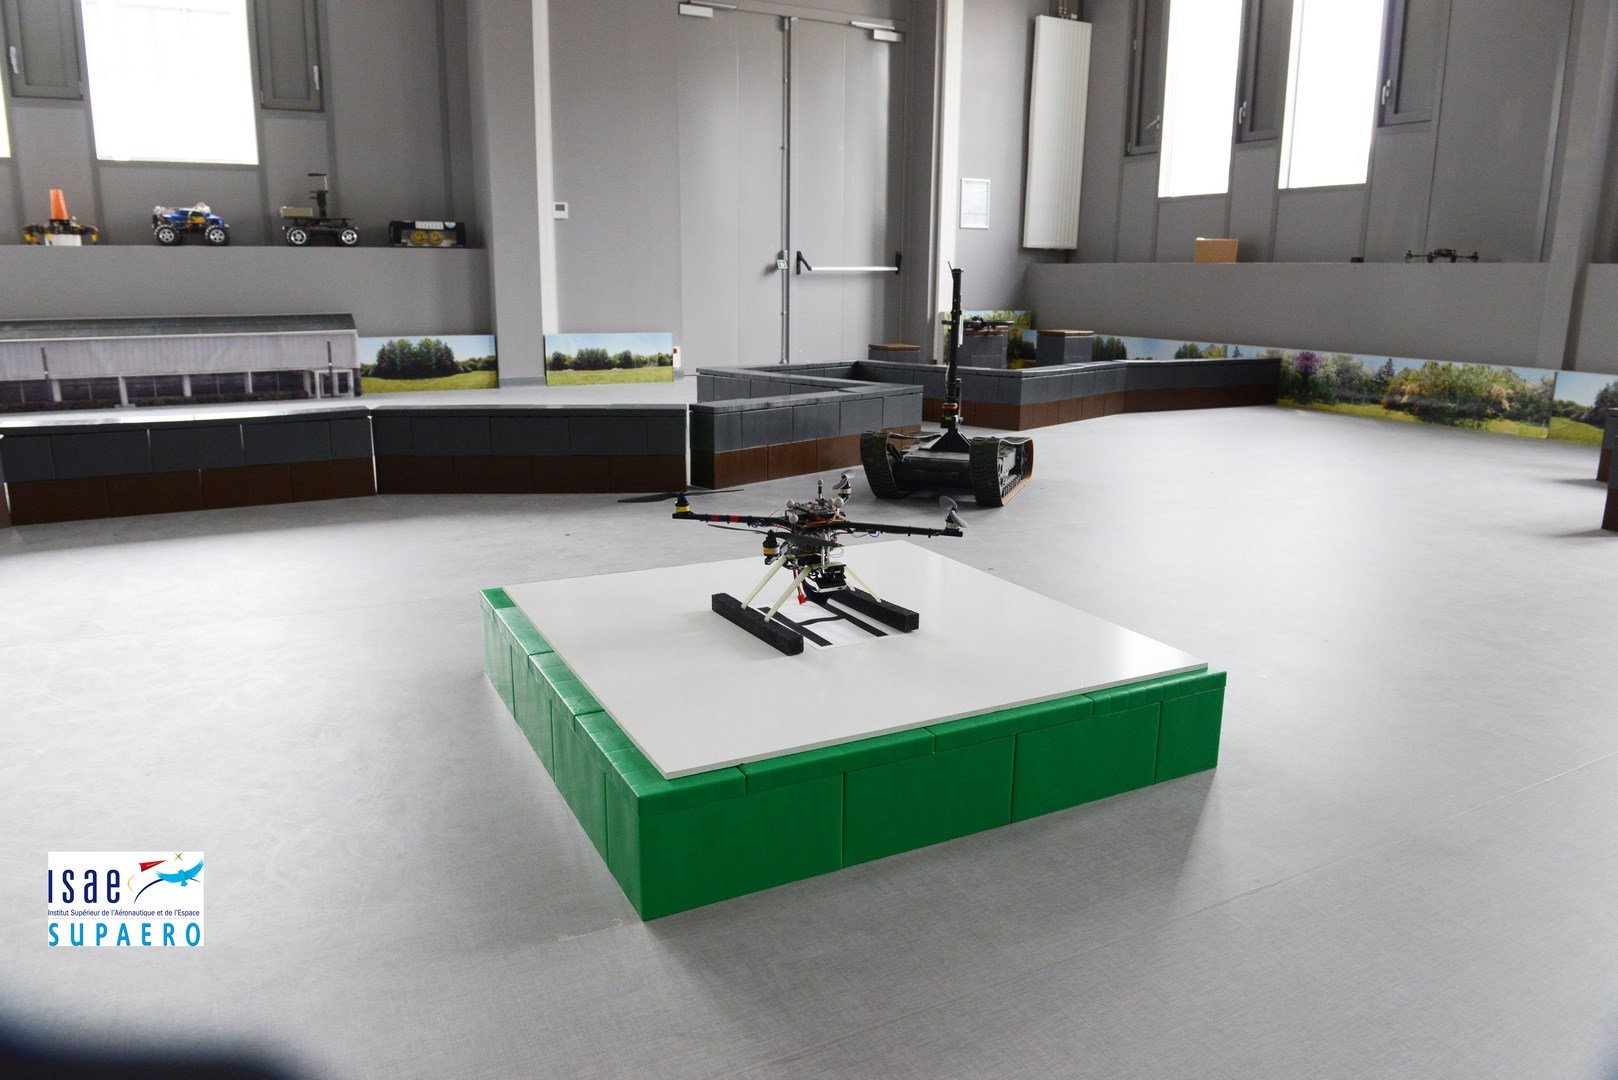 Use to create borders and enclosure for robotics and other educational projects.